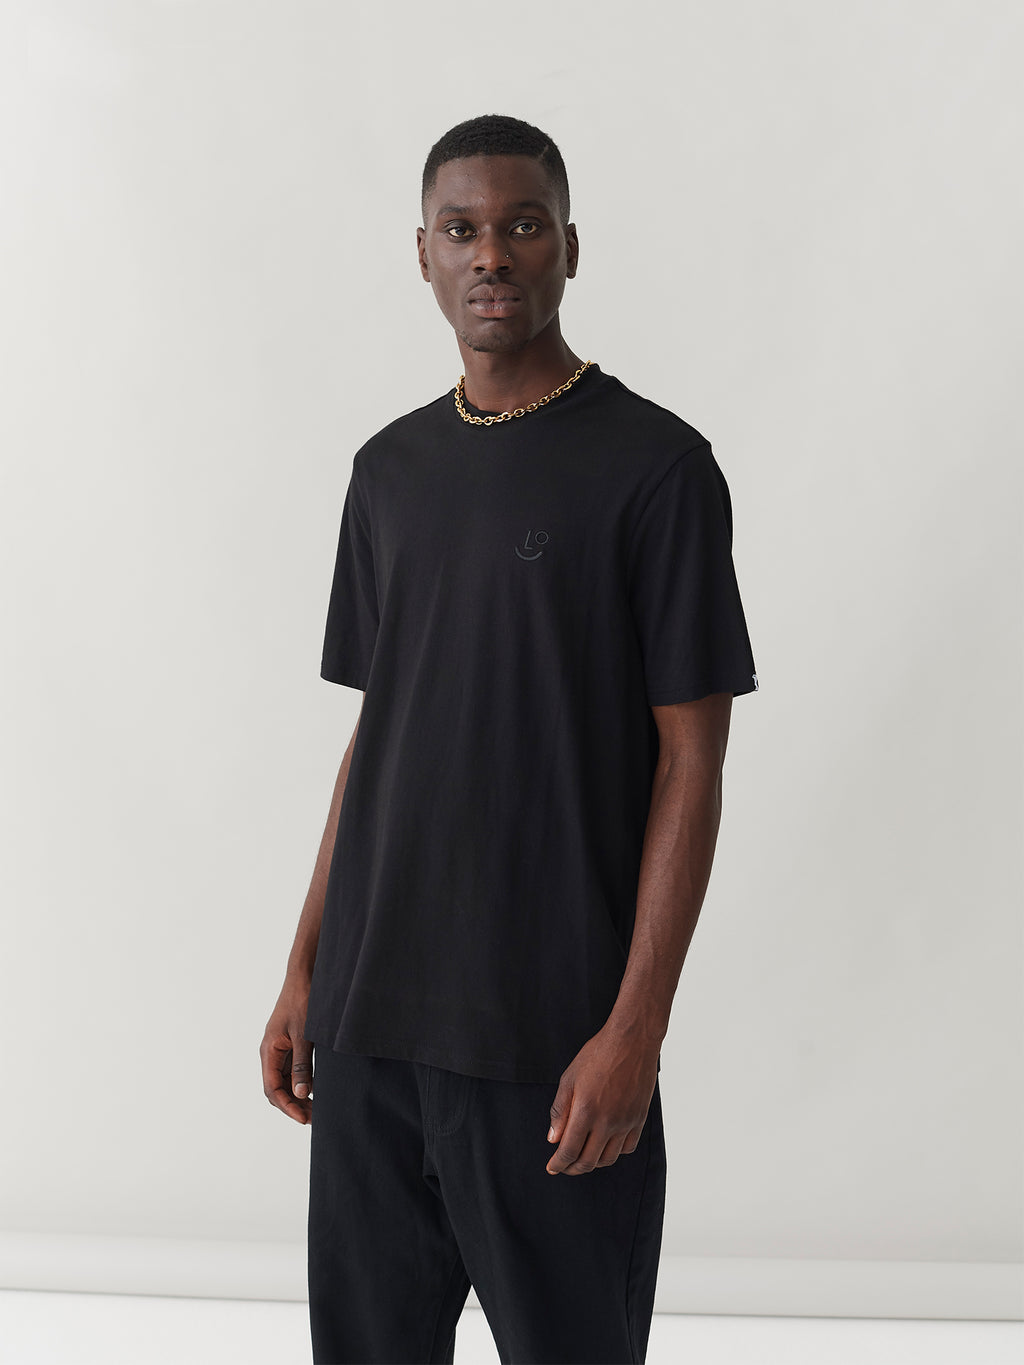 LO Boy T-Shirt - Black